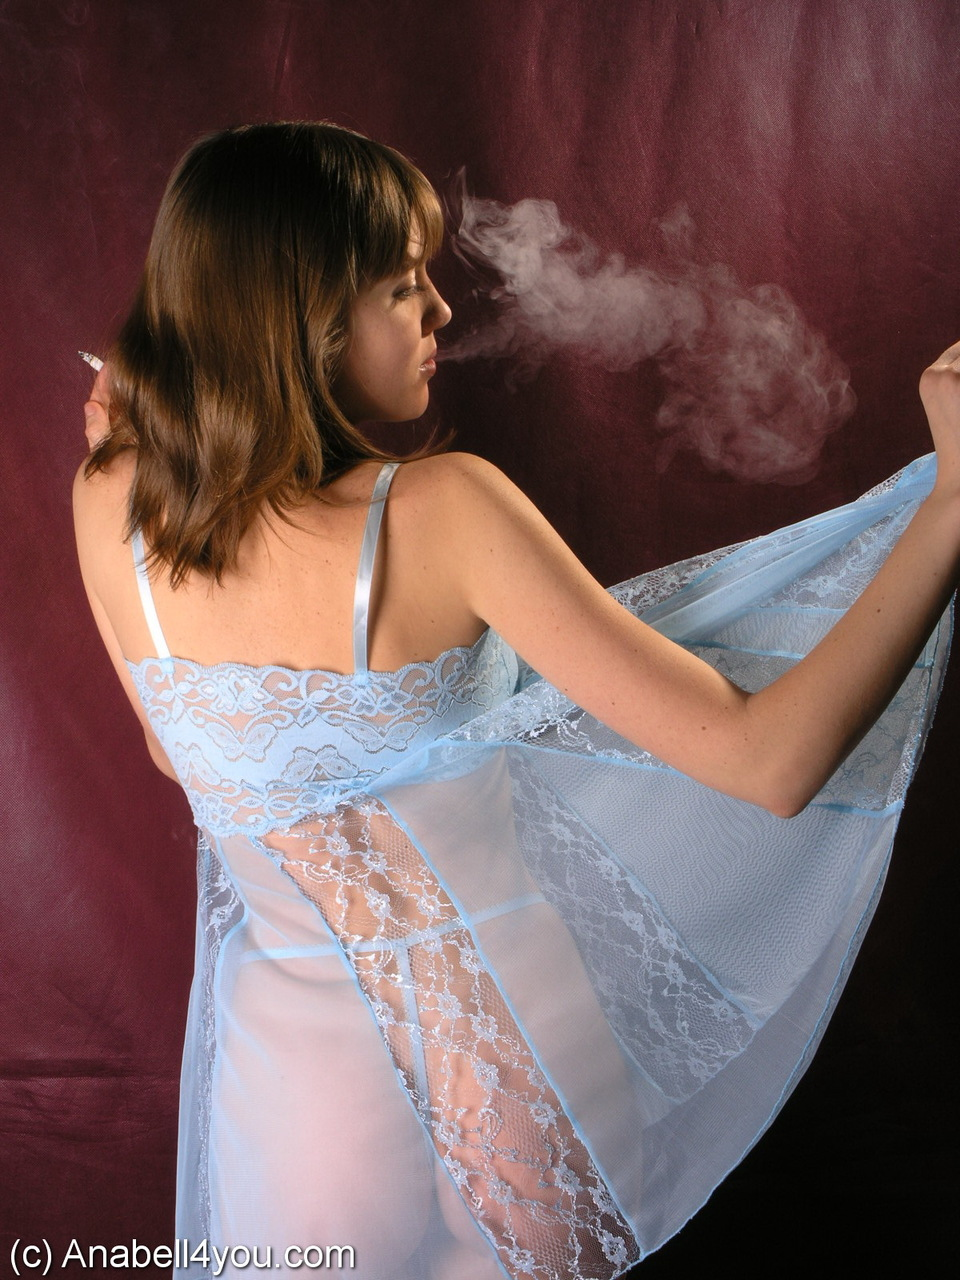 Solo girl Annabell flashes her panties while smoking in sheer lingerie